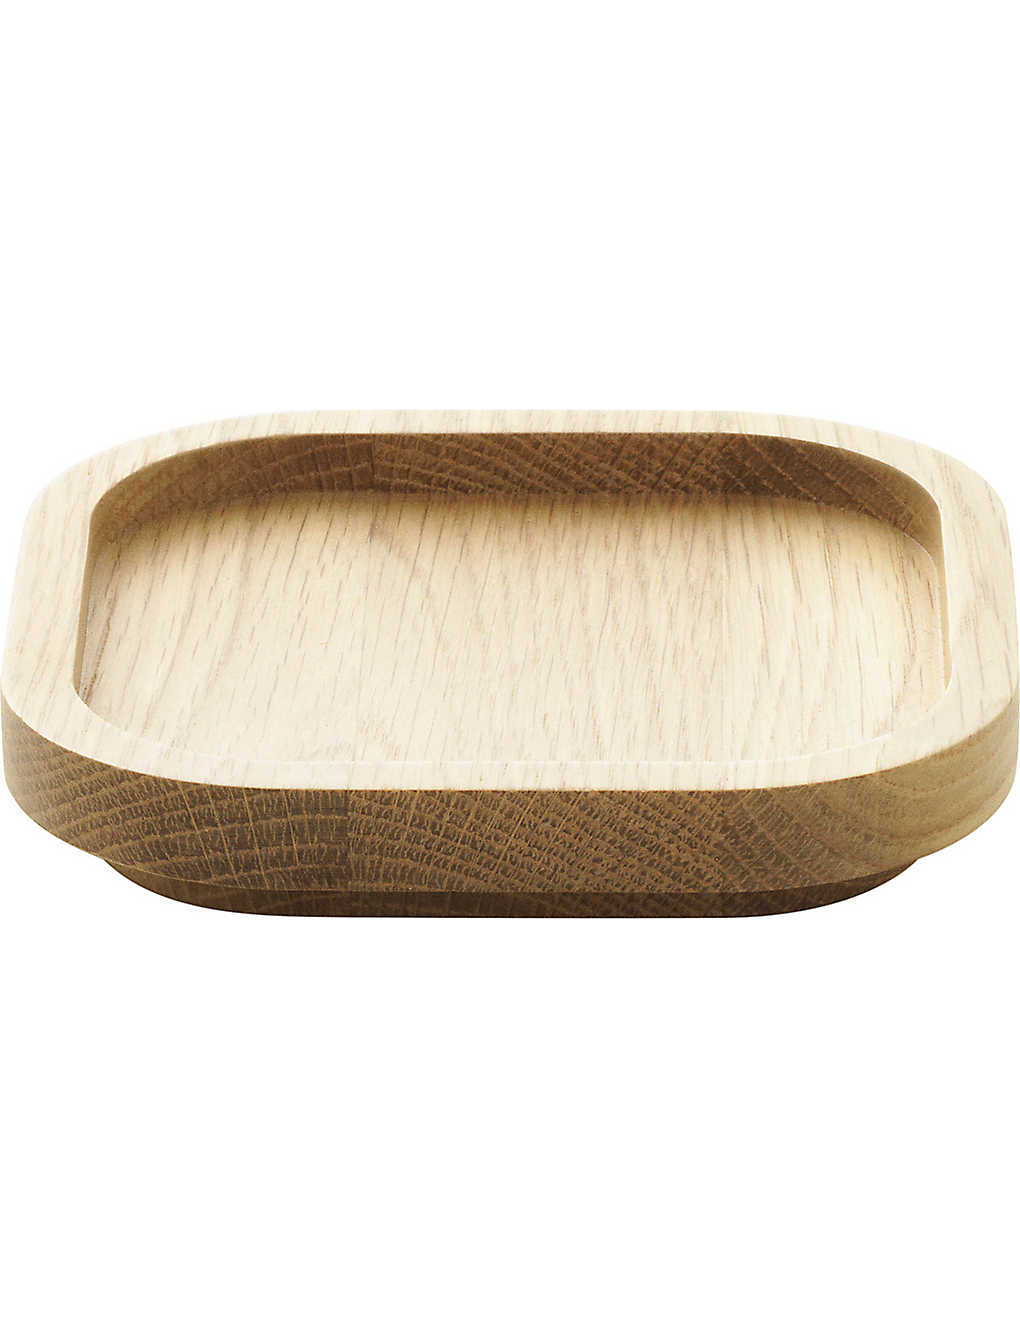 NORMANN - Astro oak tray 12cm | Selfridges.com